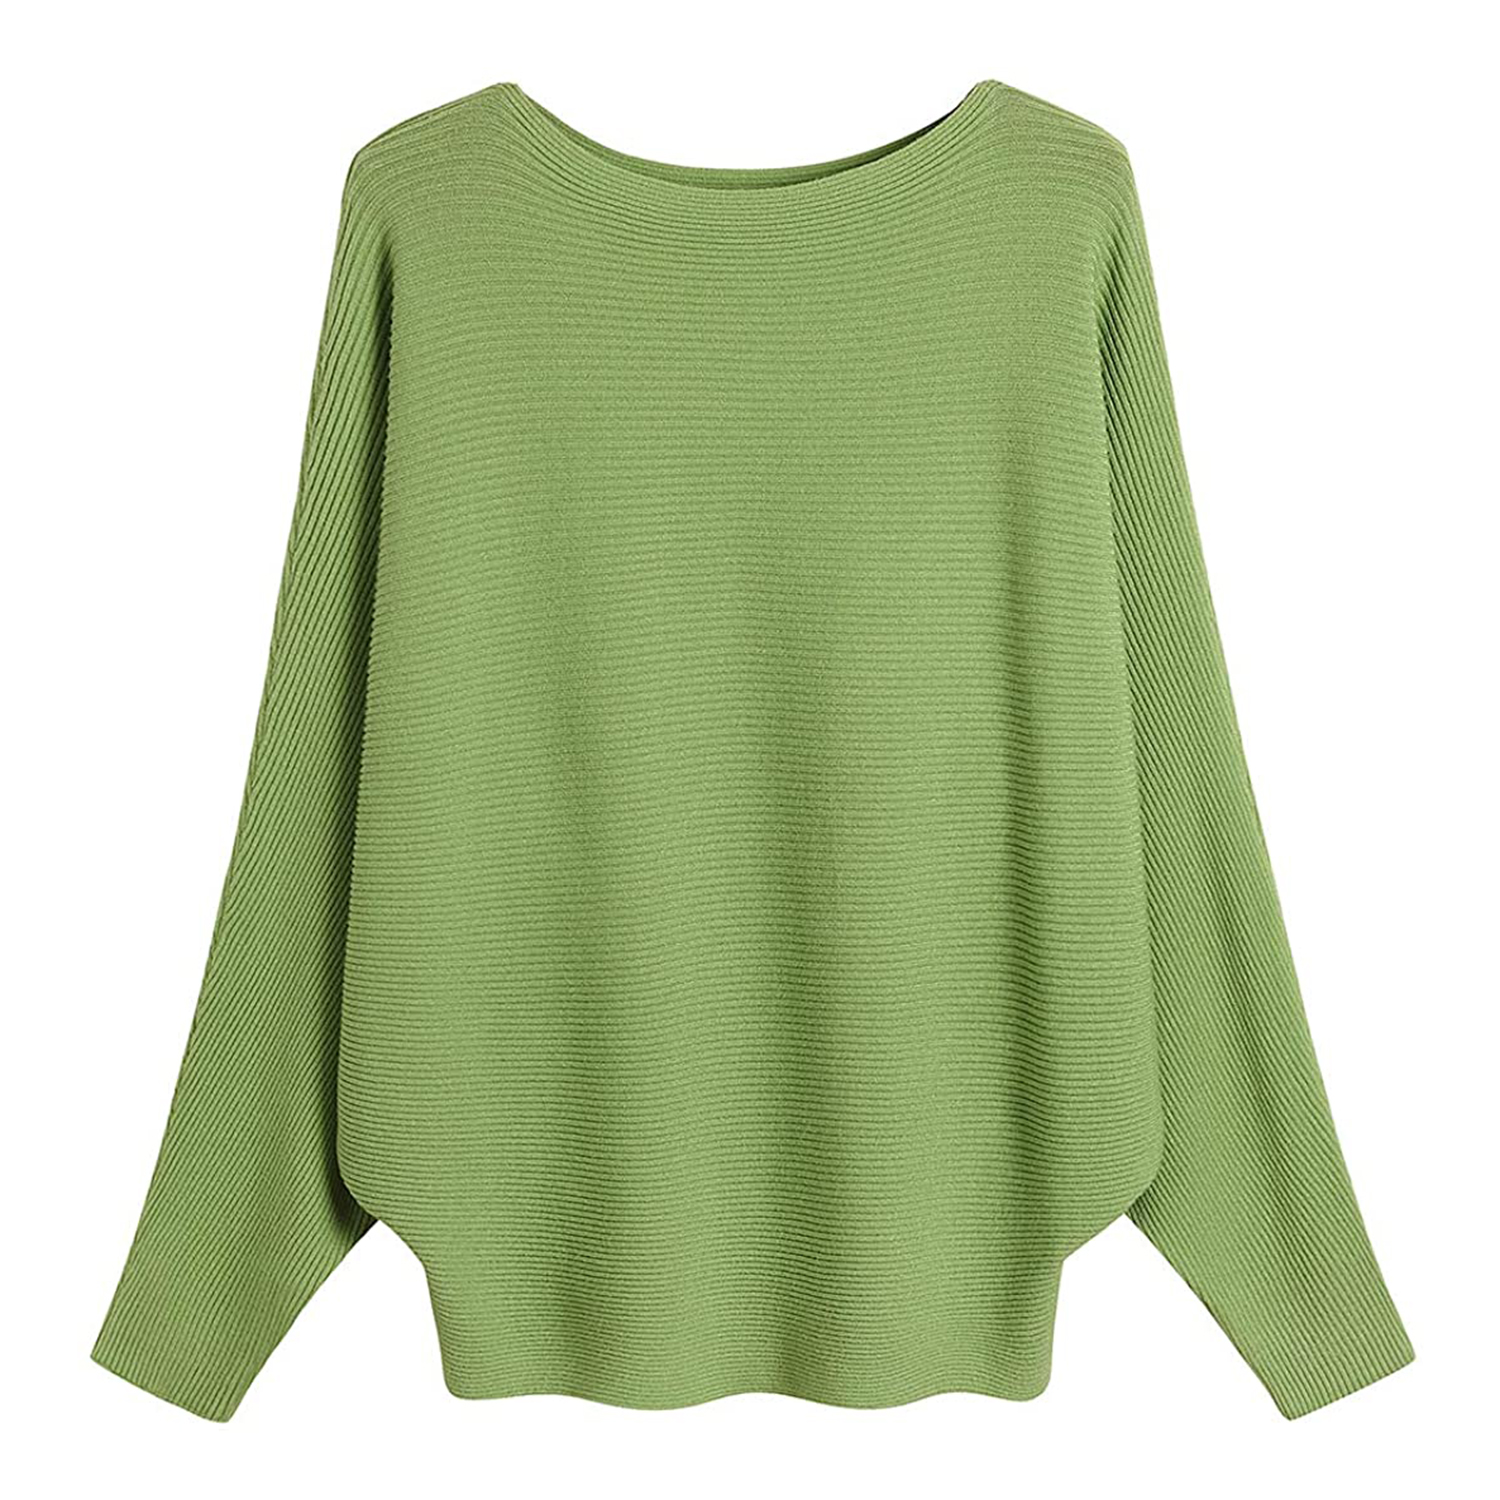 GABERLY Boat Neck Batwing Sleeves Dolman Knitted Sweaters and Pullovers